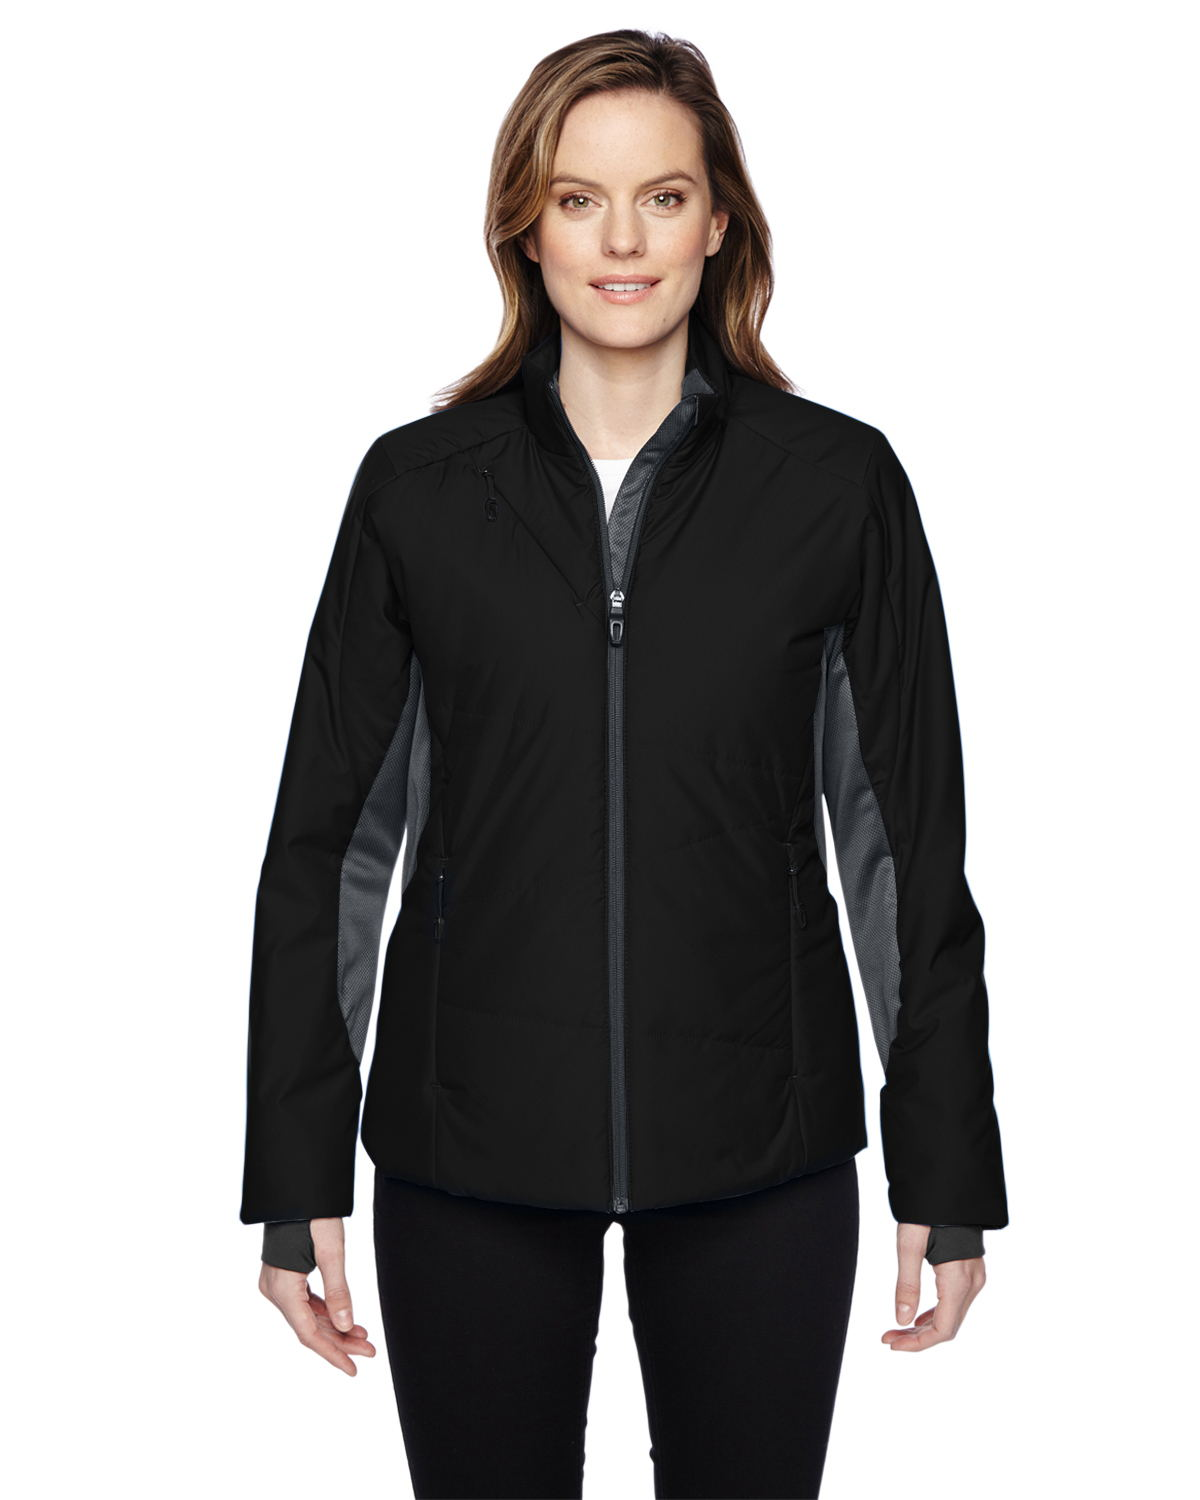 Ash City North End Sport Red 78696 - Ladies' Immerge Insulated Hybrid Jacket with Heat Reflect Technology